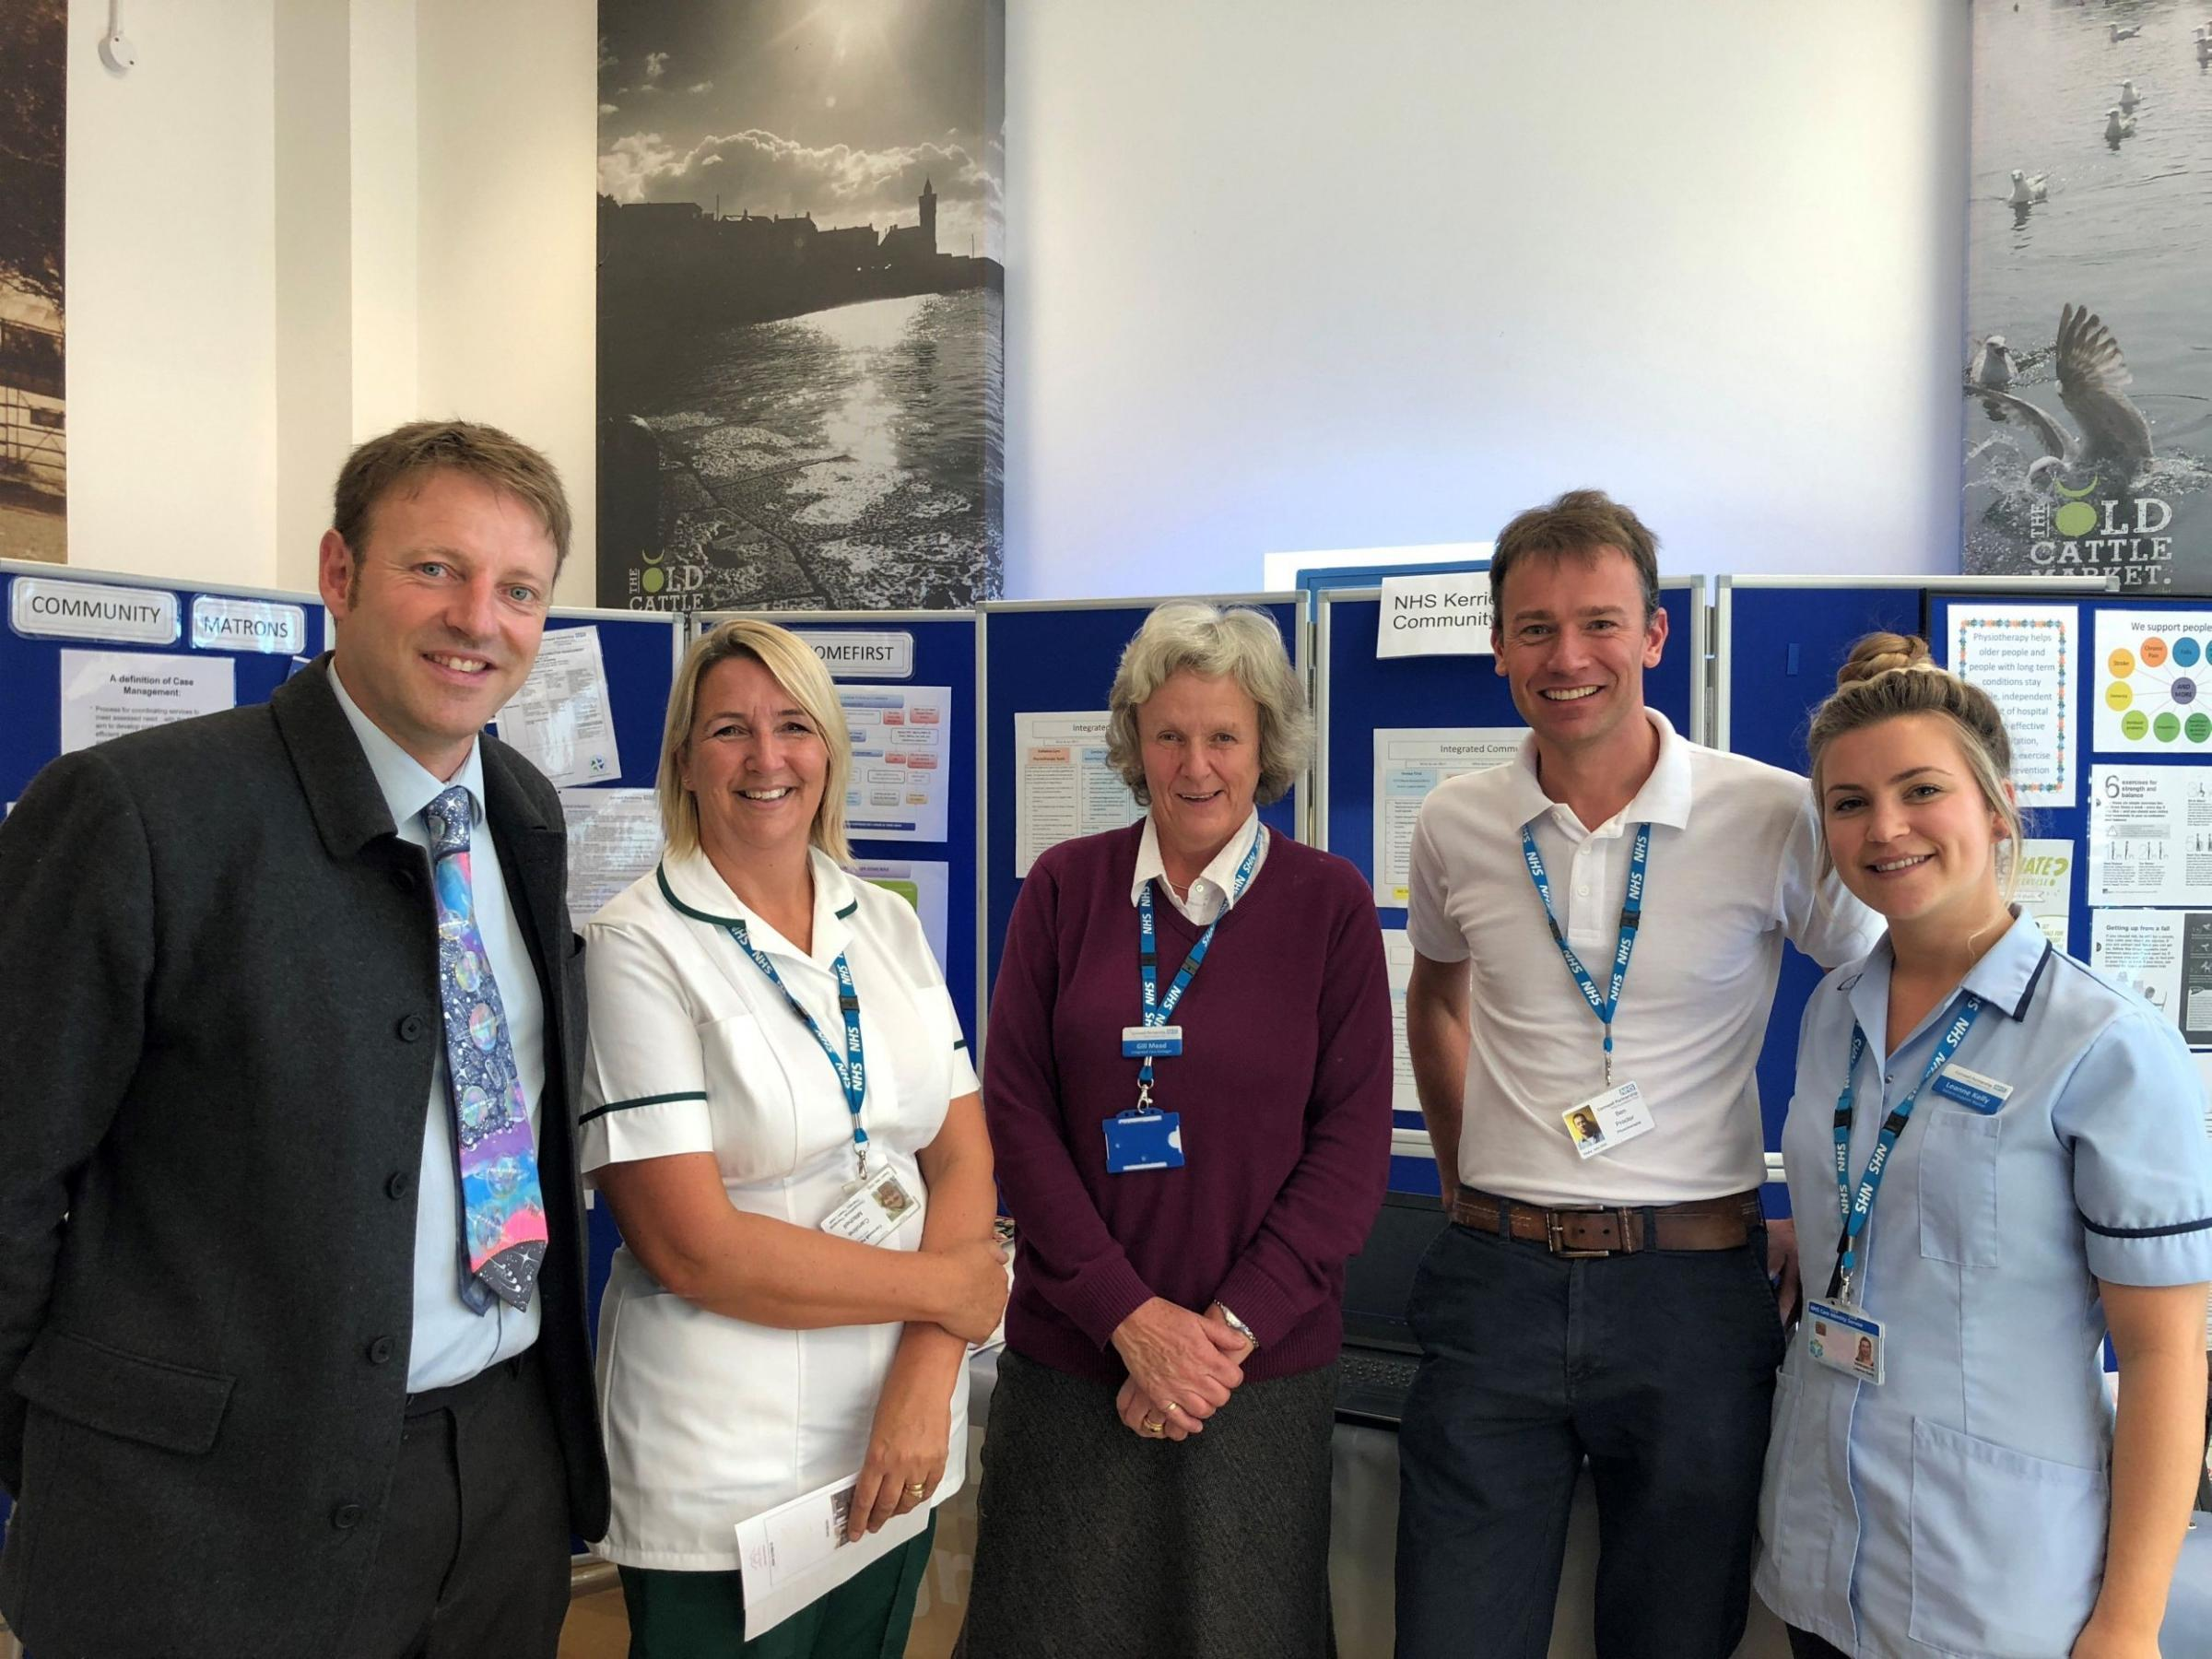 Derek Thomas meets NHS health professionals at a healthcare event in Helston